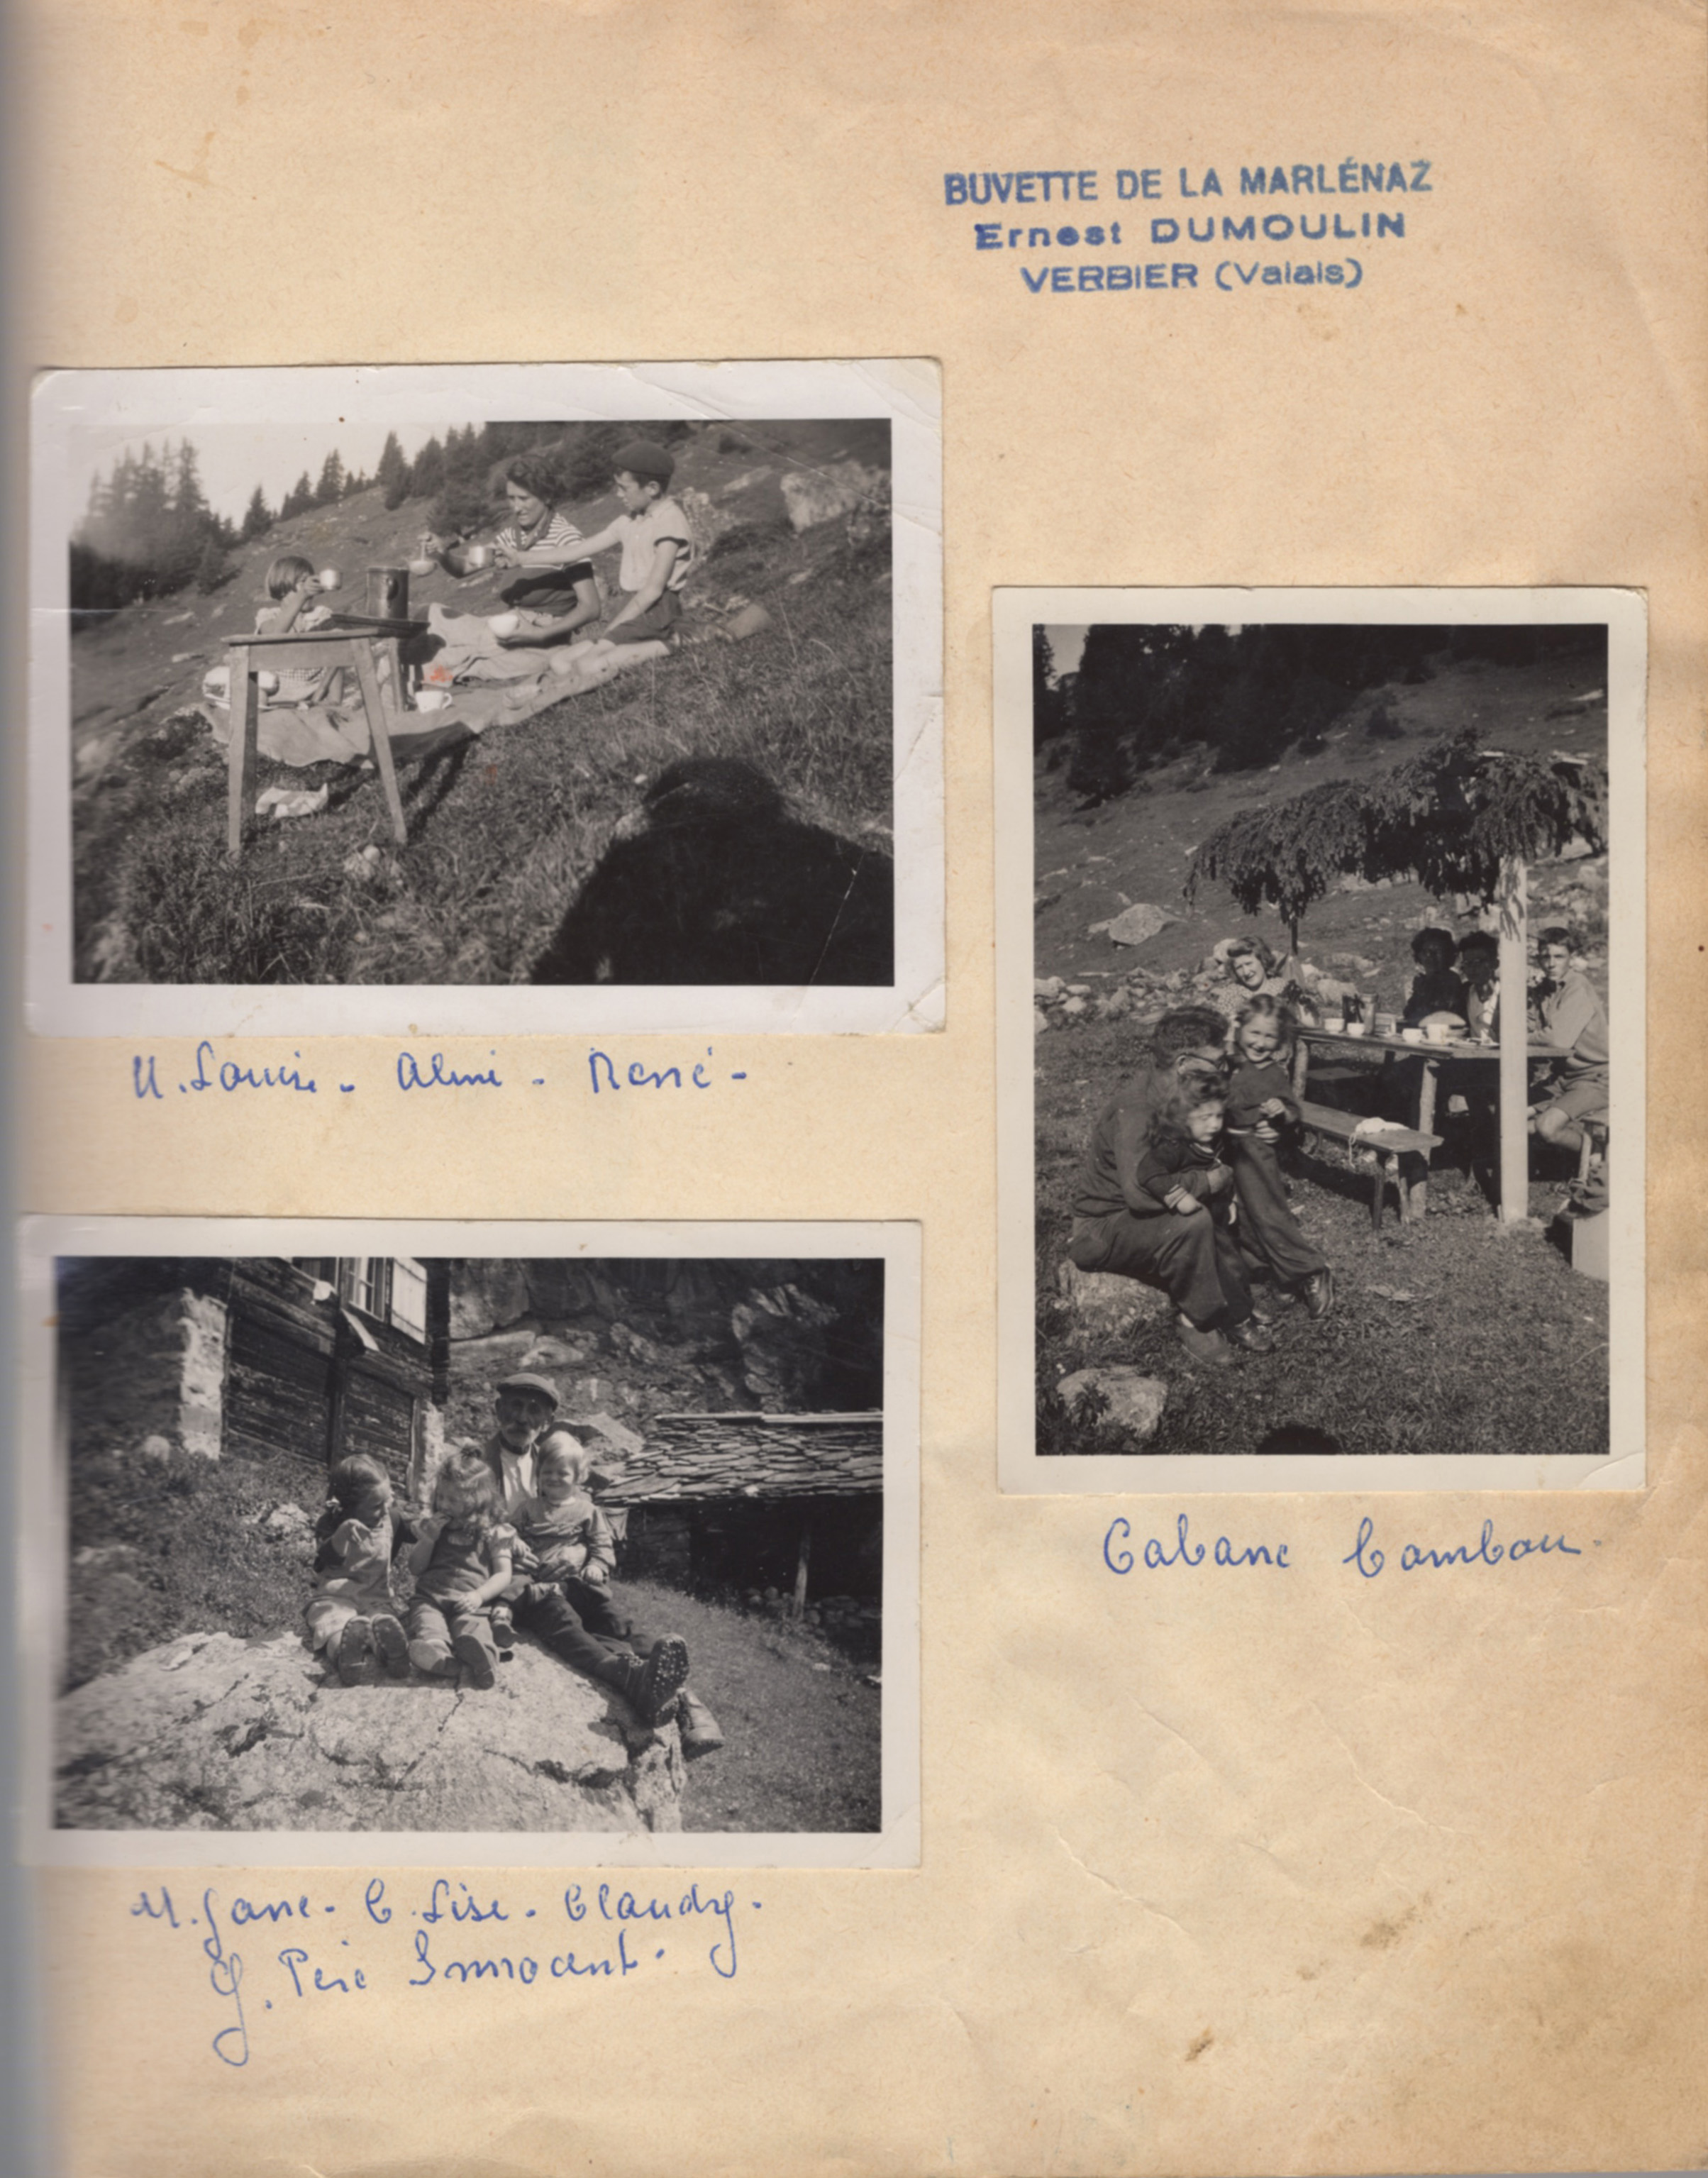 """On the 7th of August, 1959, Innocents son, Mr. Ernest Dumolin (1916-1983) was given the concession to exploit 'unebuvette au lieu dit """"Le Clou/Verbier""""' in the region of Pierre Avoi.  Between 1959-1960 Ernest finally turned the mayen into a refreshments bar and opened it to the public in 1960."""